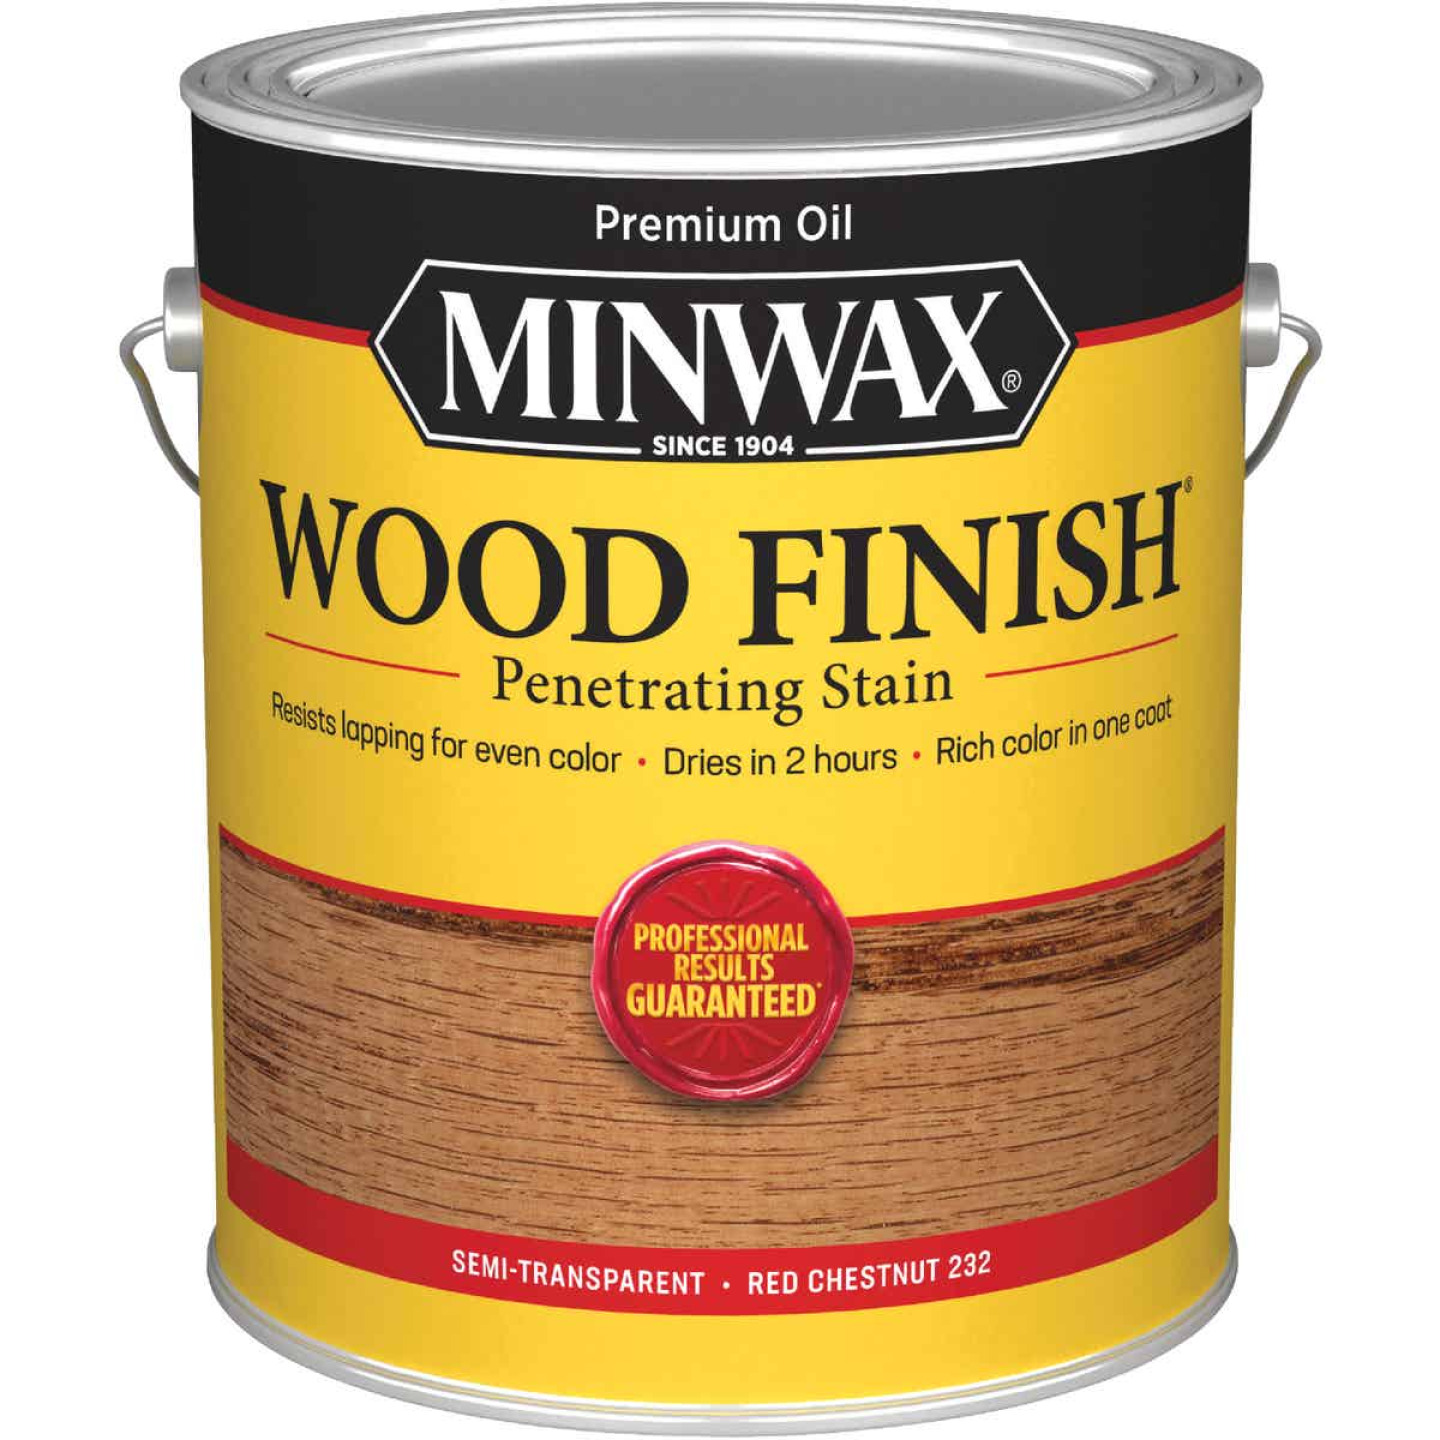 Minwax Wood Finish Penetrating Stain, Red Chestnut, 1 Gal. Image 1